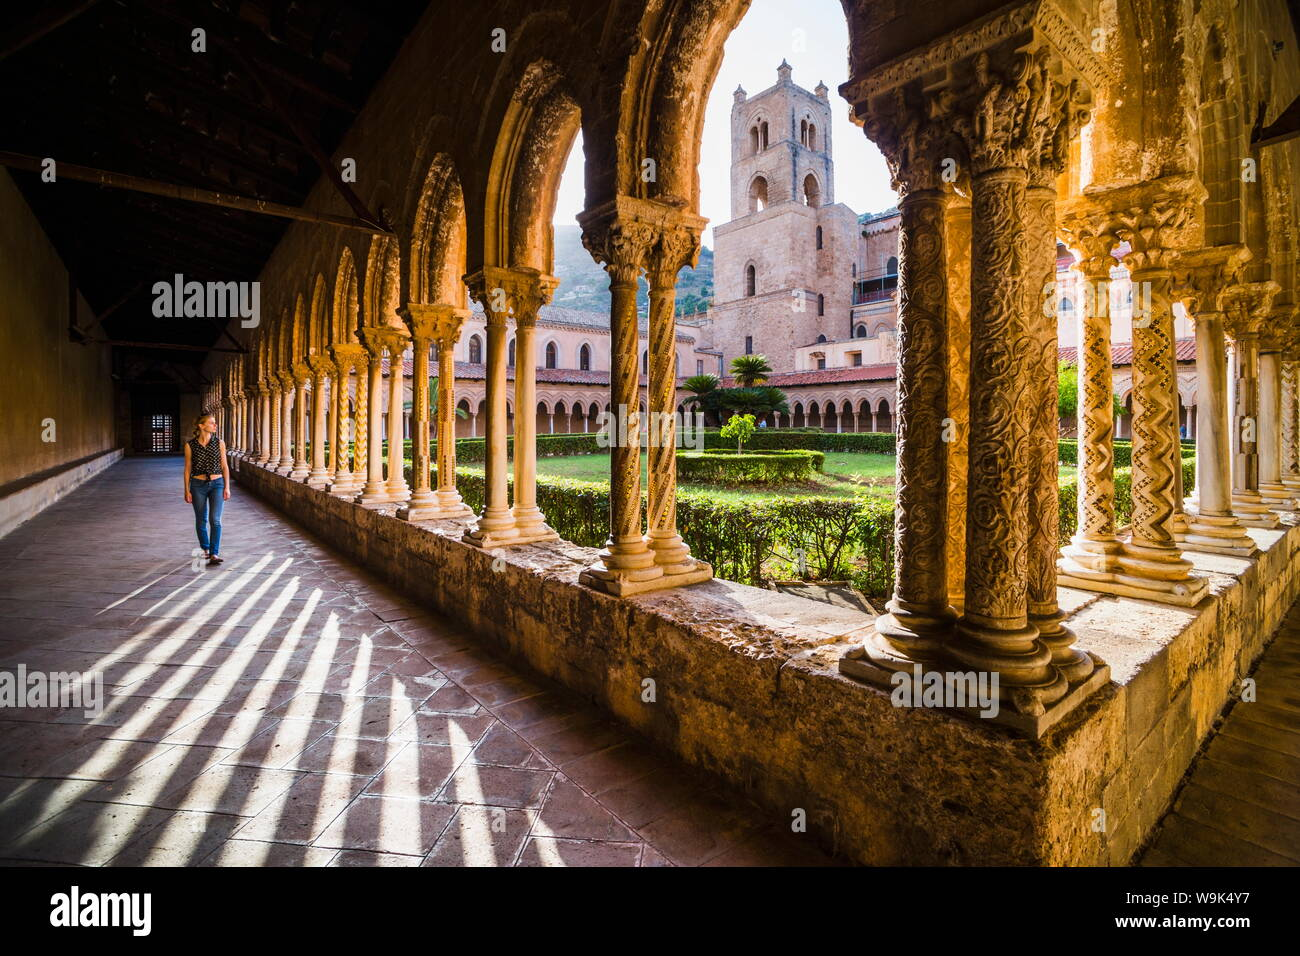 Tourist at Duomo di Monreale (Monreale Cathedral) in the courtyard gardens, Monreale, near Palermo, Sicily, Italy, Europe Stock Photo